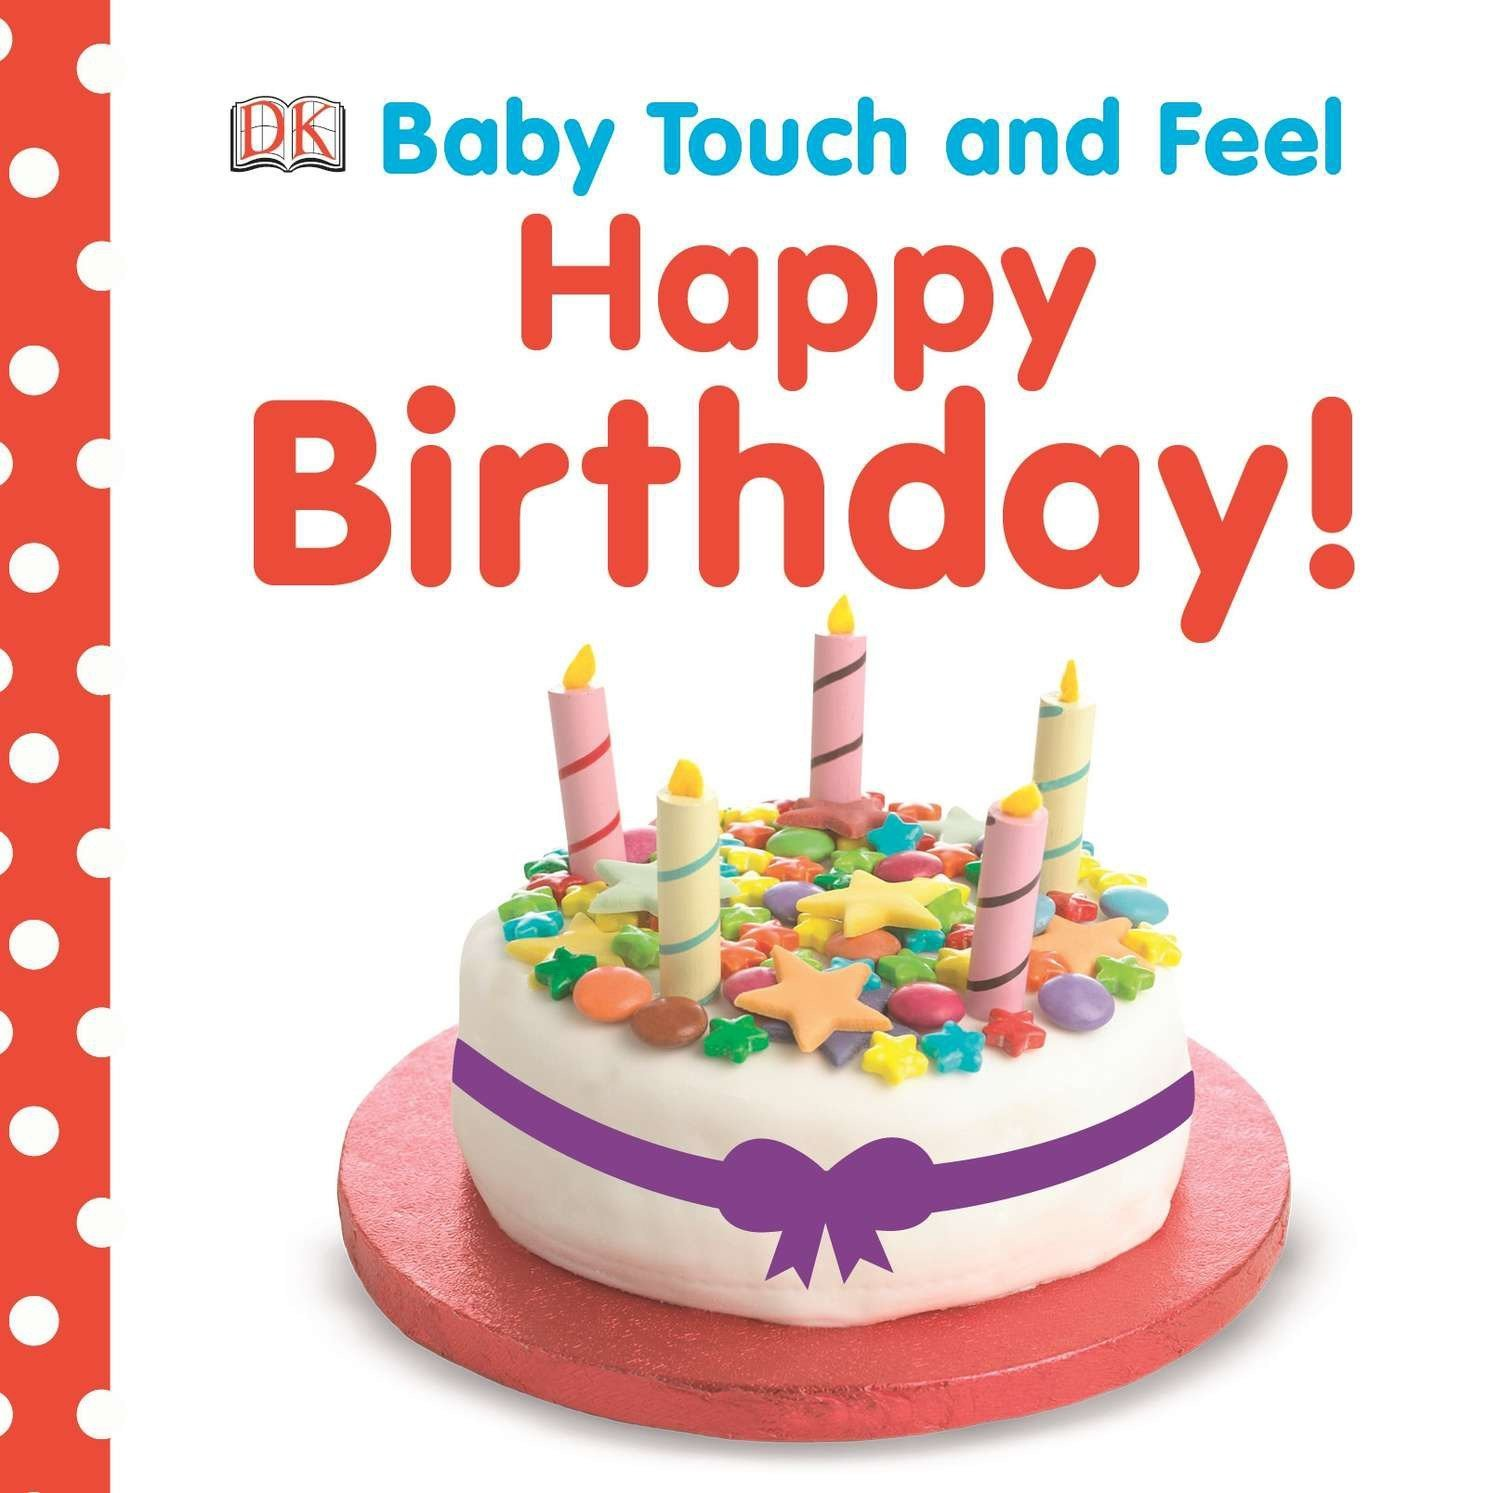 Amazoncom Baby Touch And Feel Happy Birthday 9781465414311 Dk